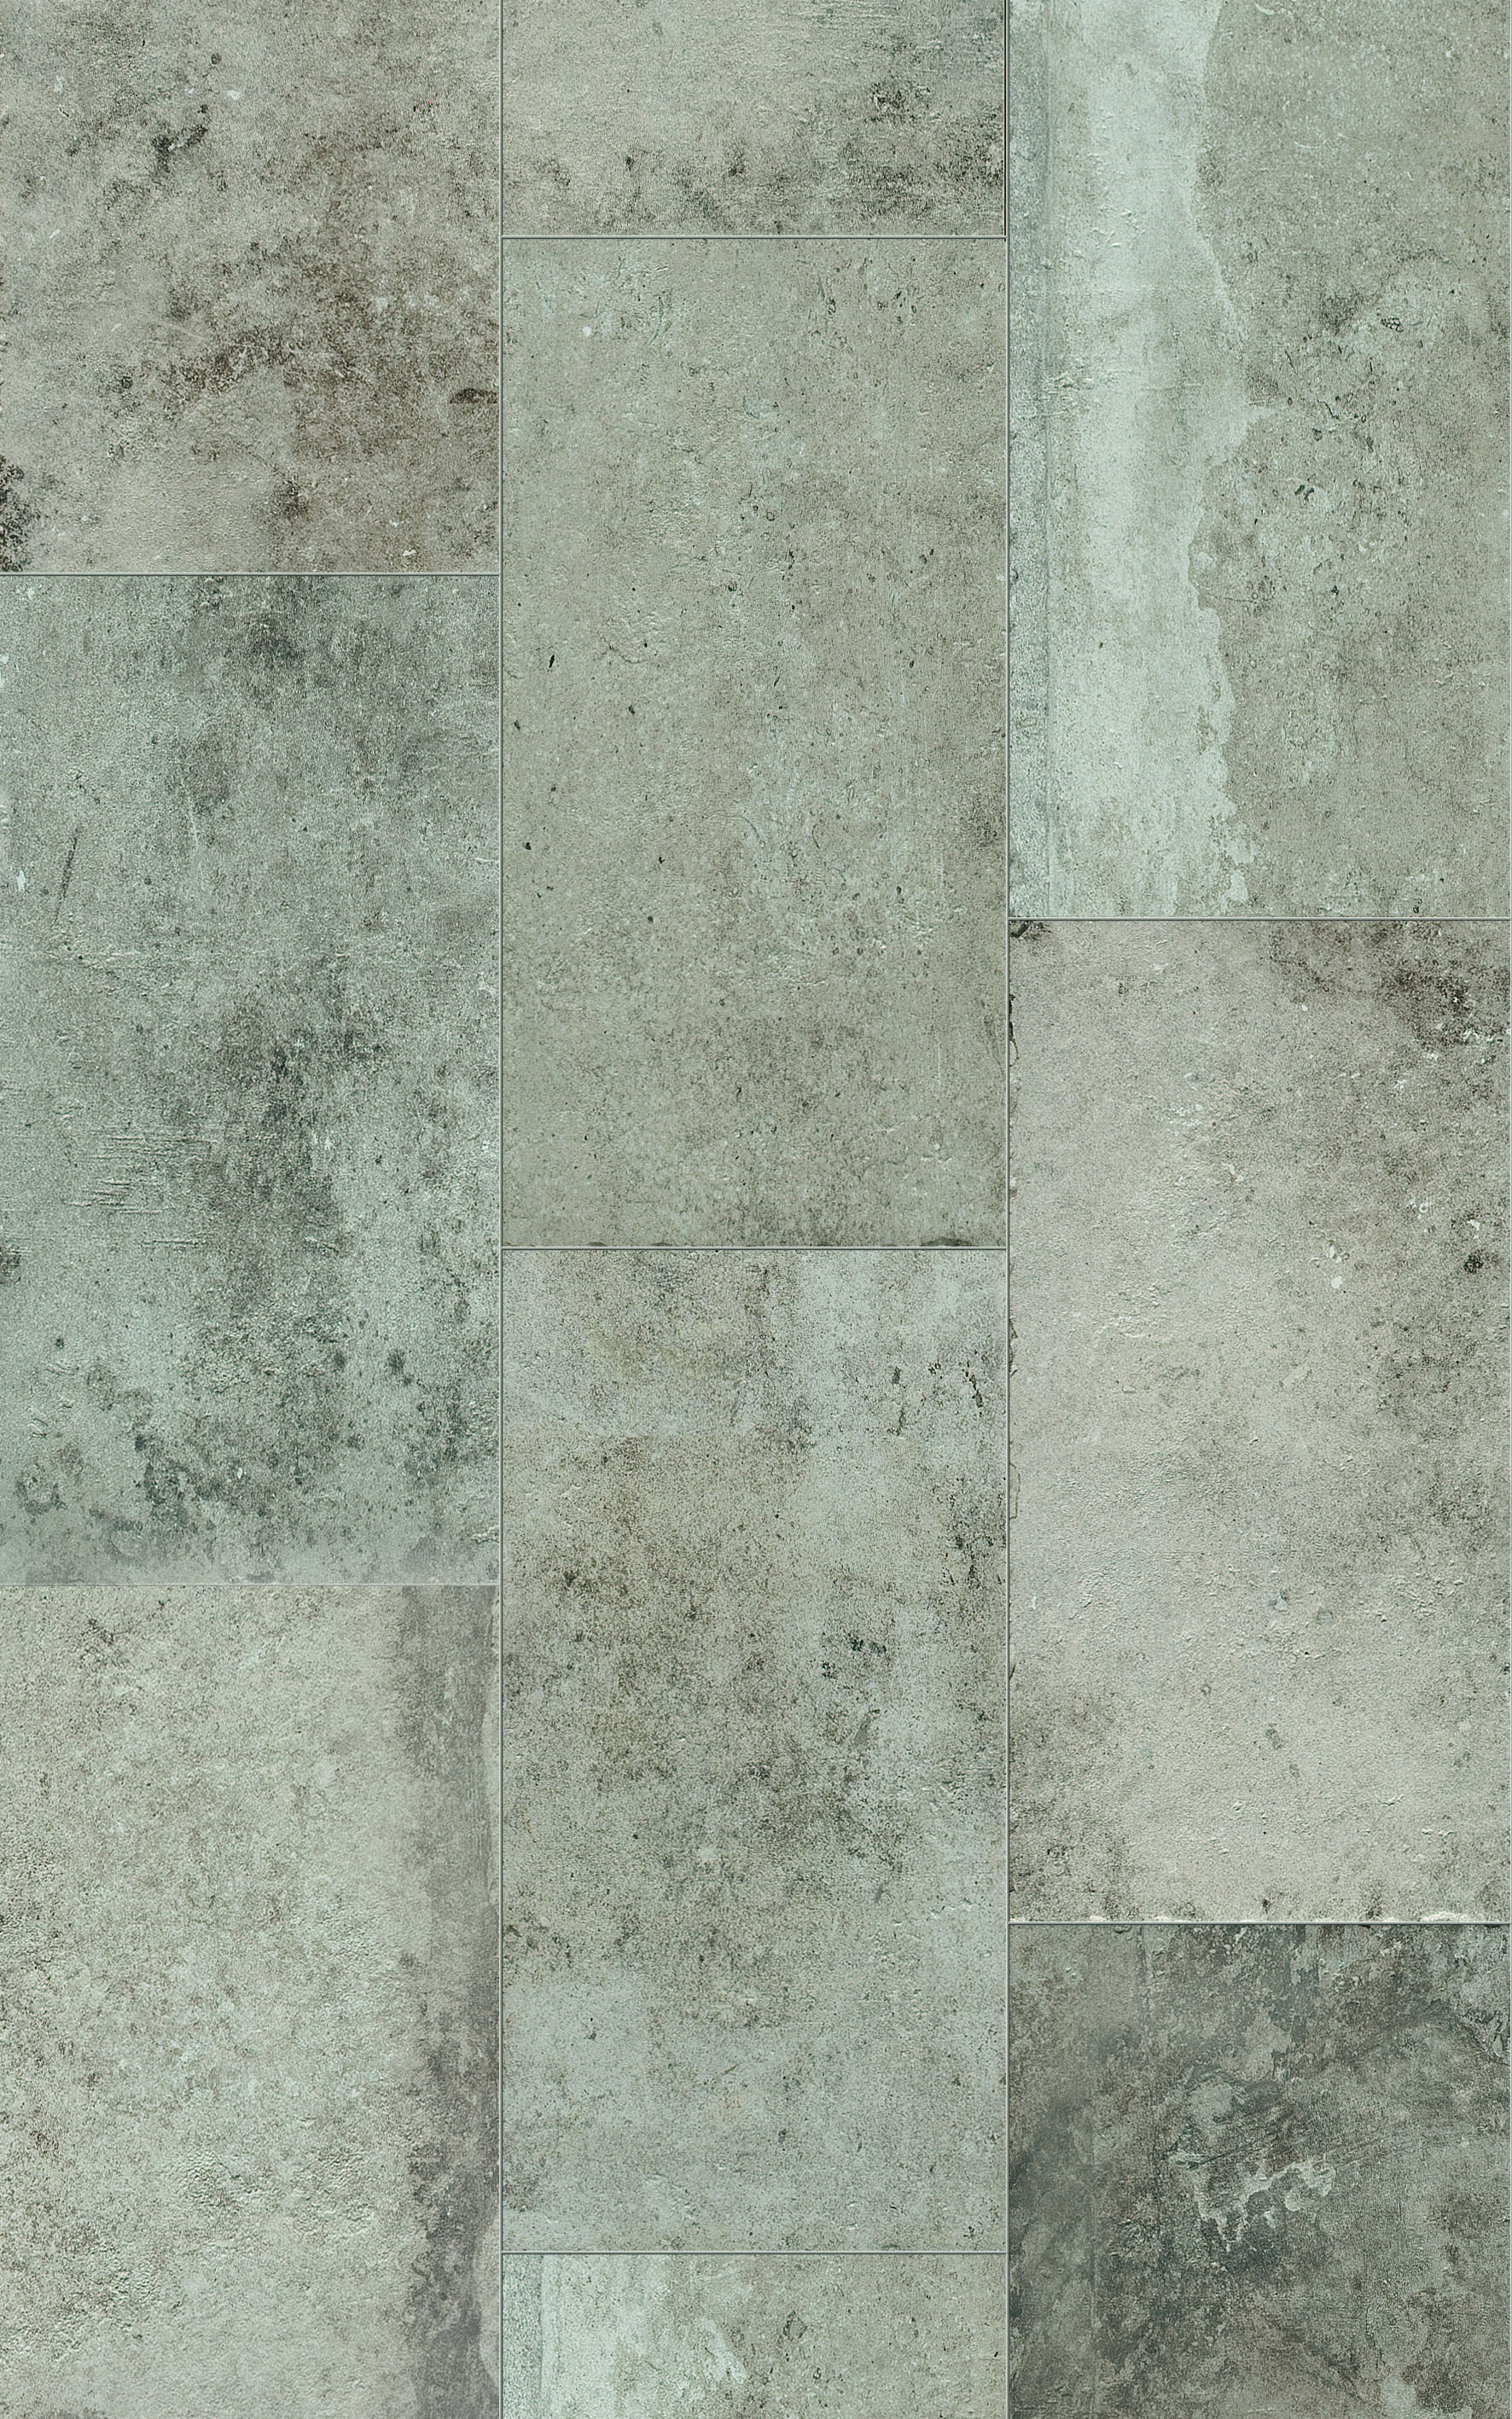 Carrelage Moderne Texture Beau Stock Tile On Photo La Roche Grey for More Tile Info Please Log Onto